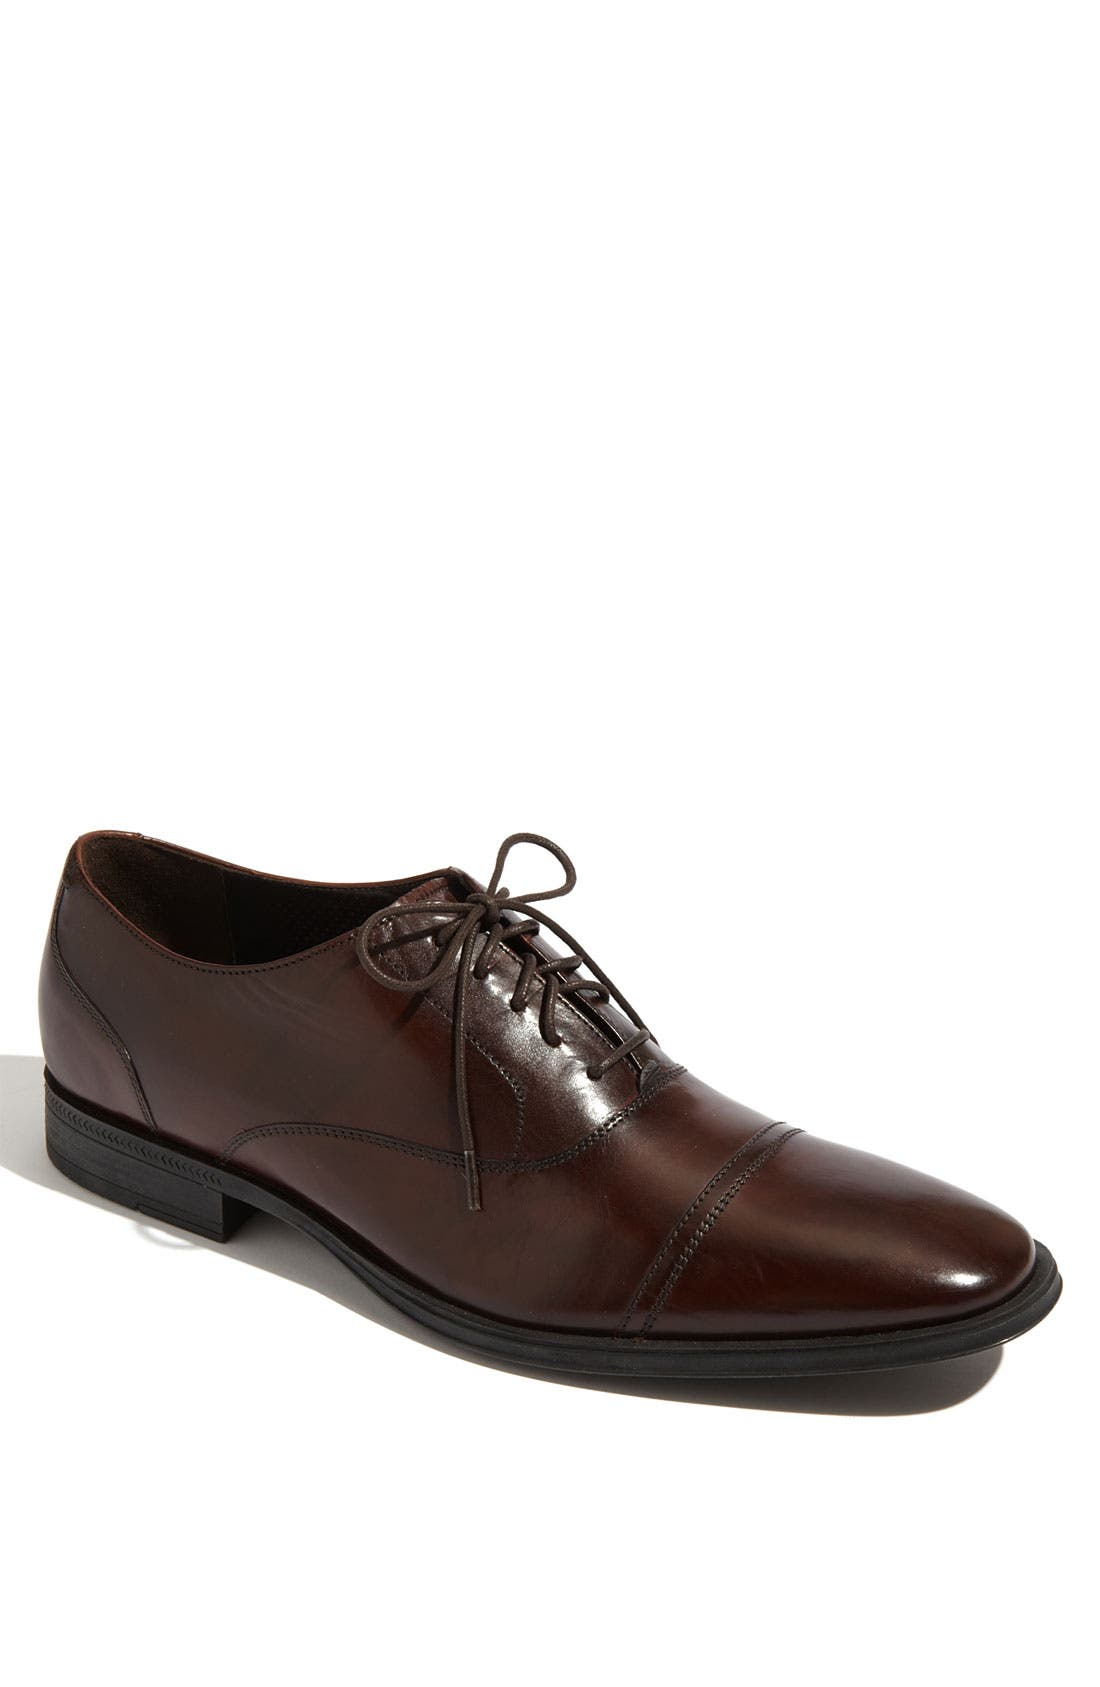 Alternate Image 1 Selected - Cole Haan 'Air Adams' Cap Toe Oxford (Online Exclusive)